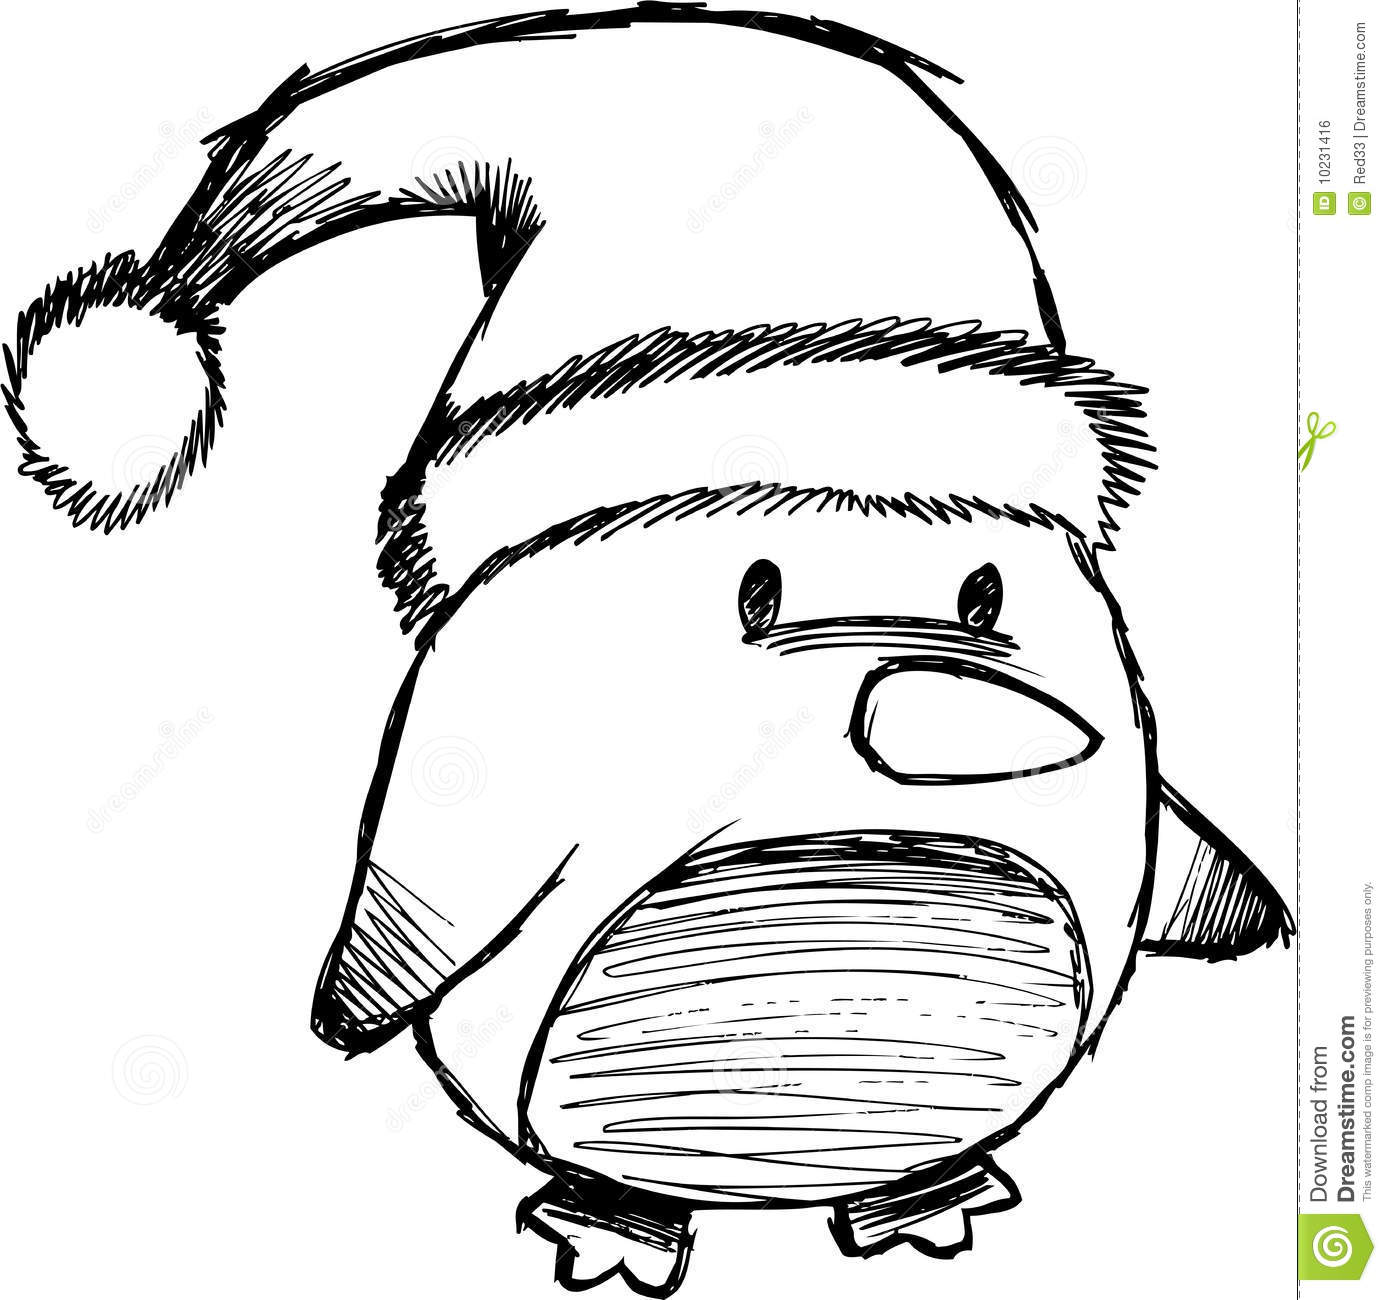 1387x1300 Panda Christmas Drawings Festival Collections